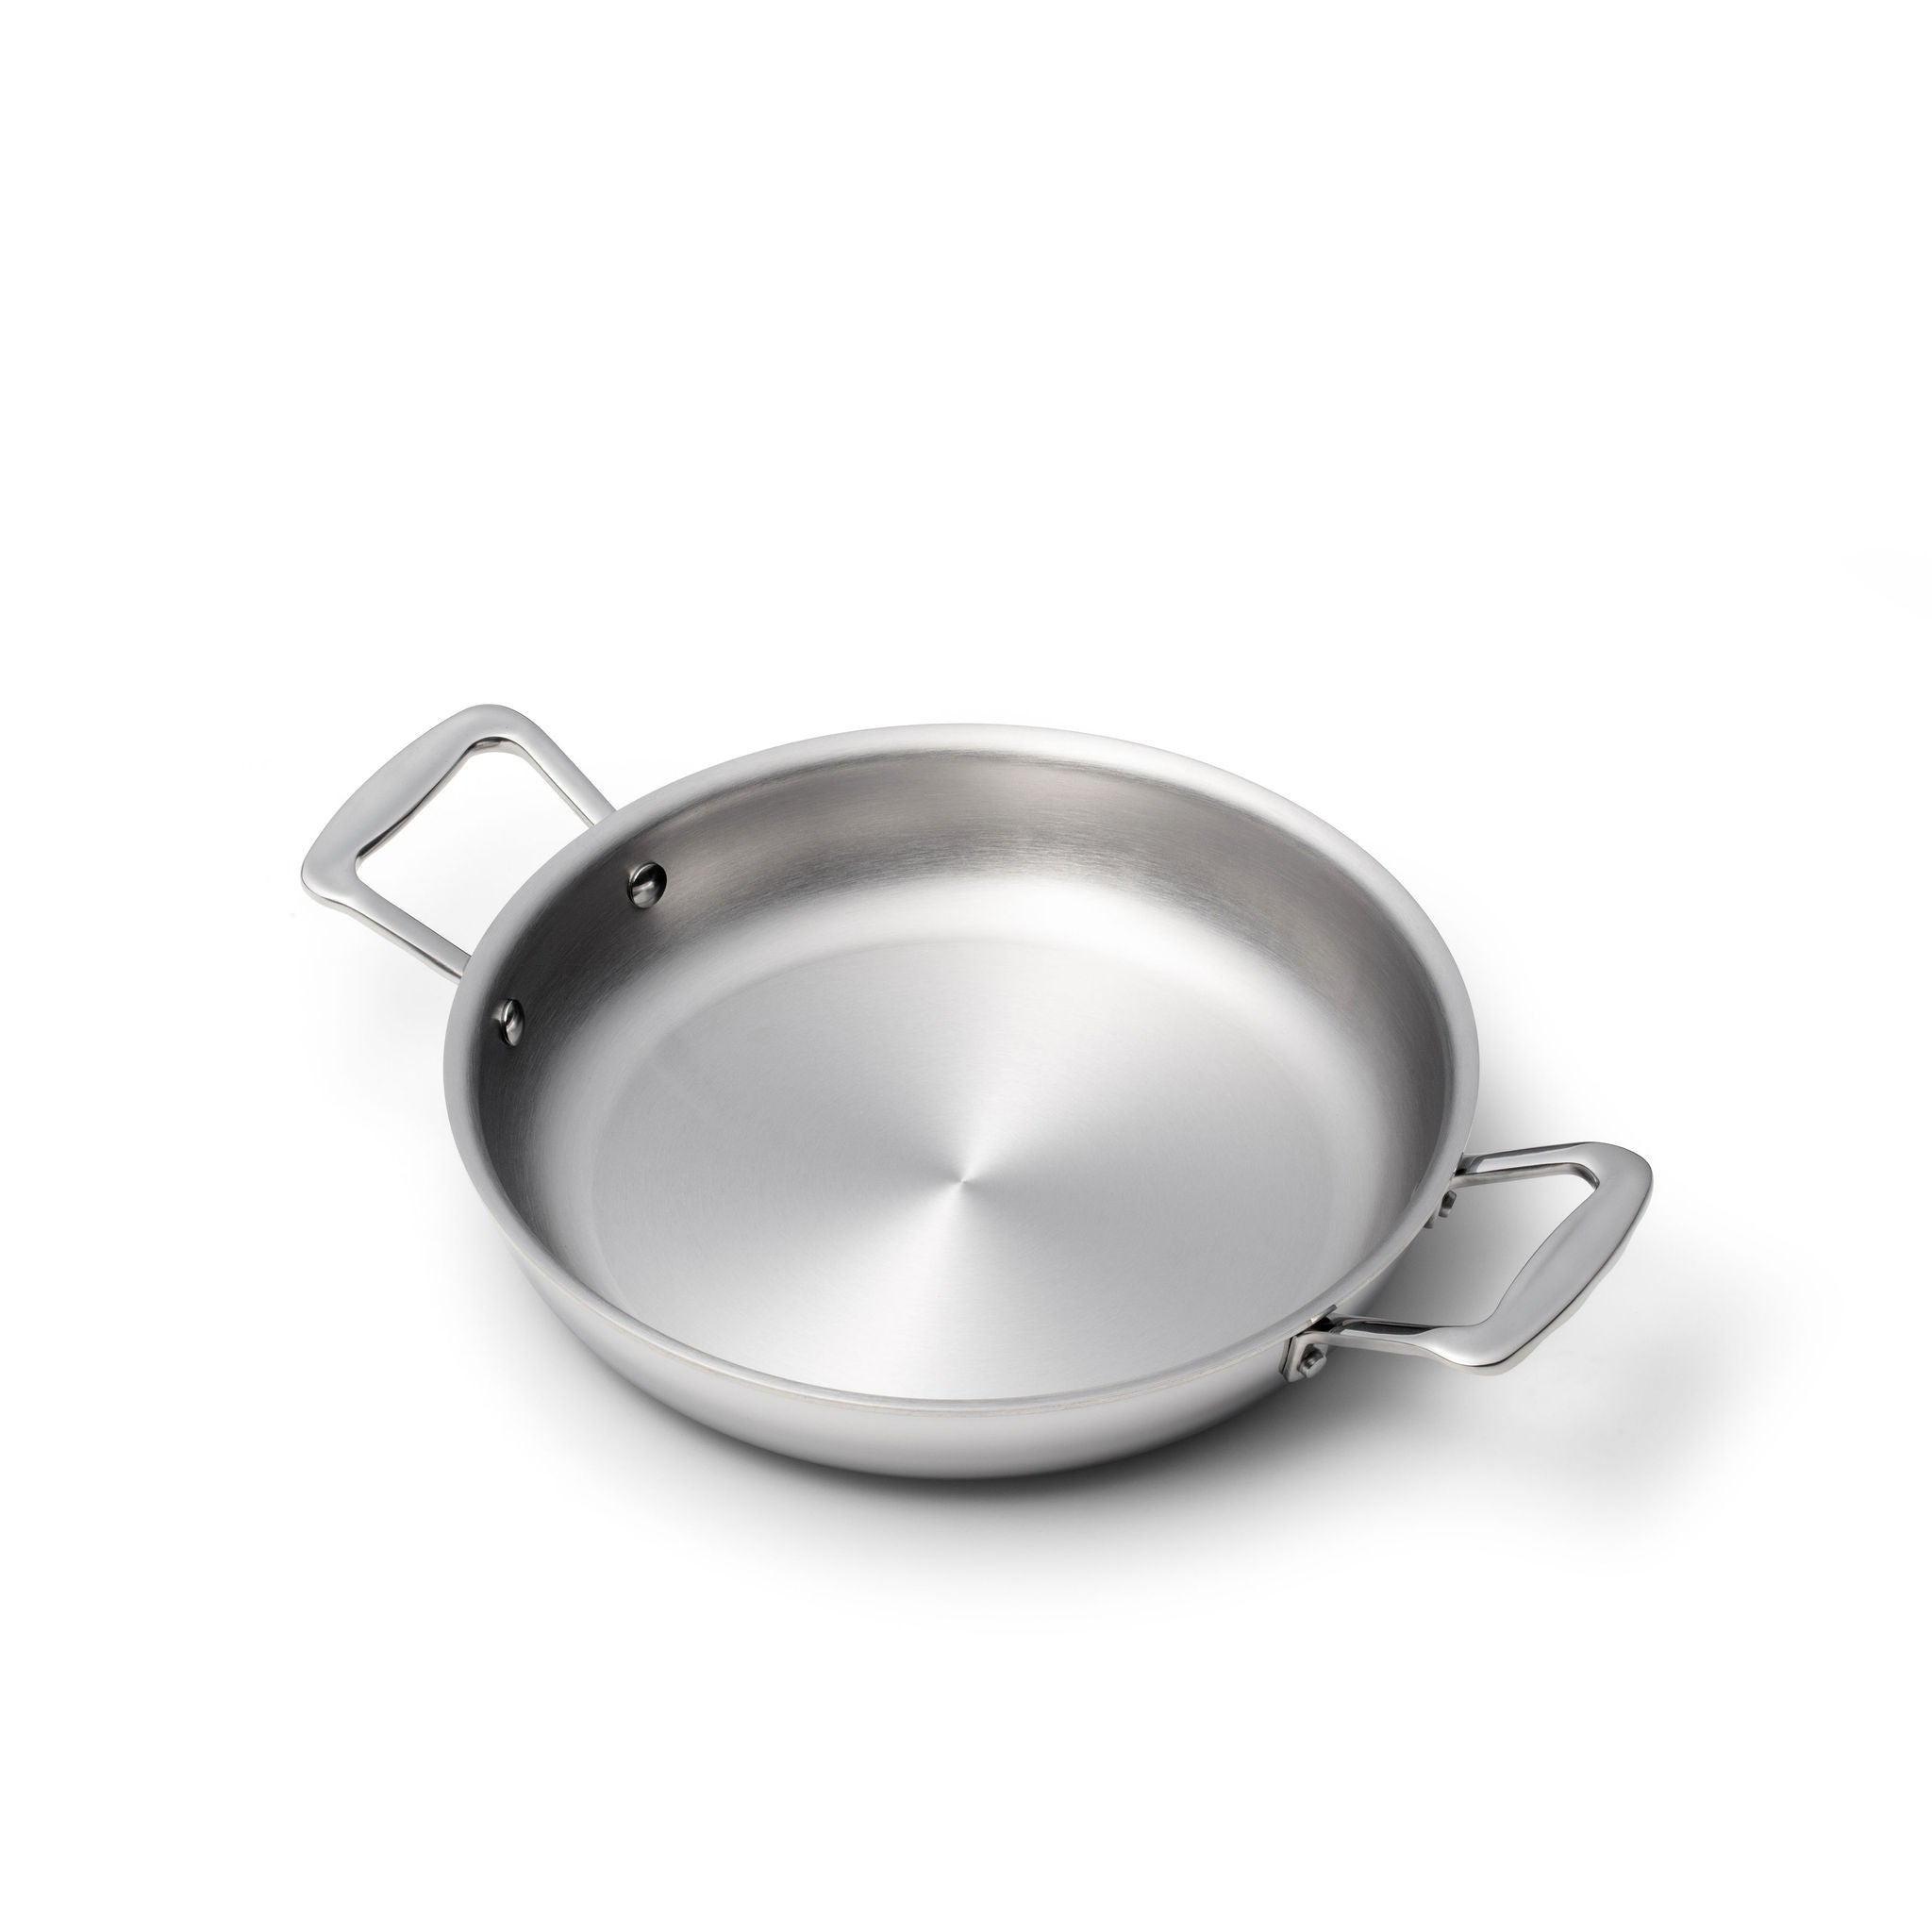 10 Inch Fry Pan with Side Handles